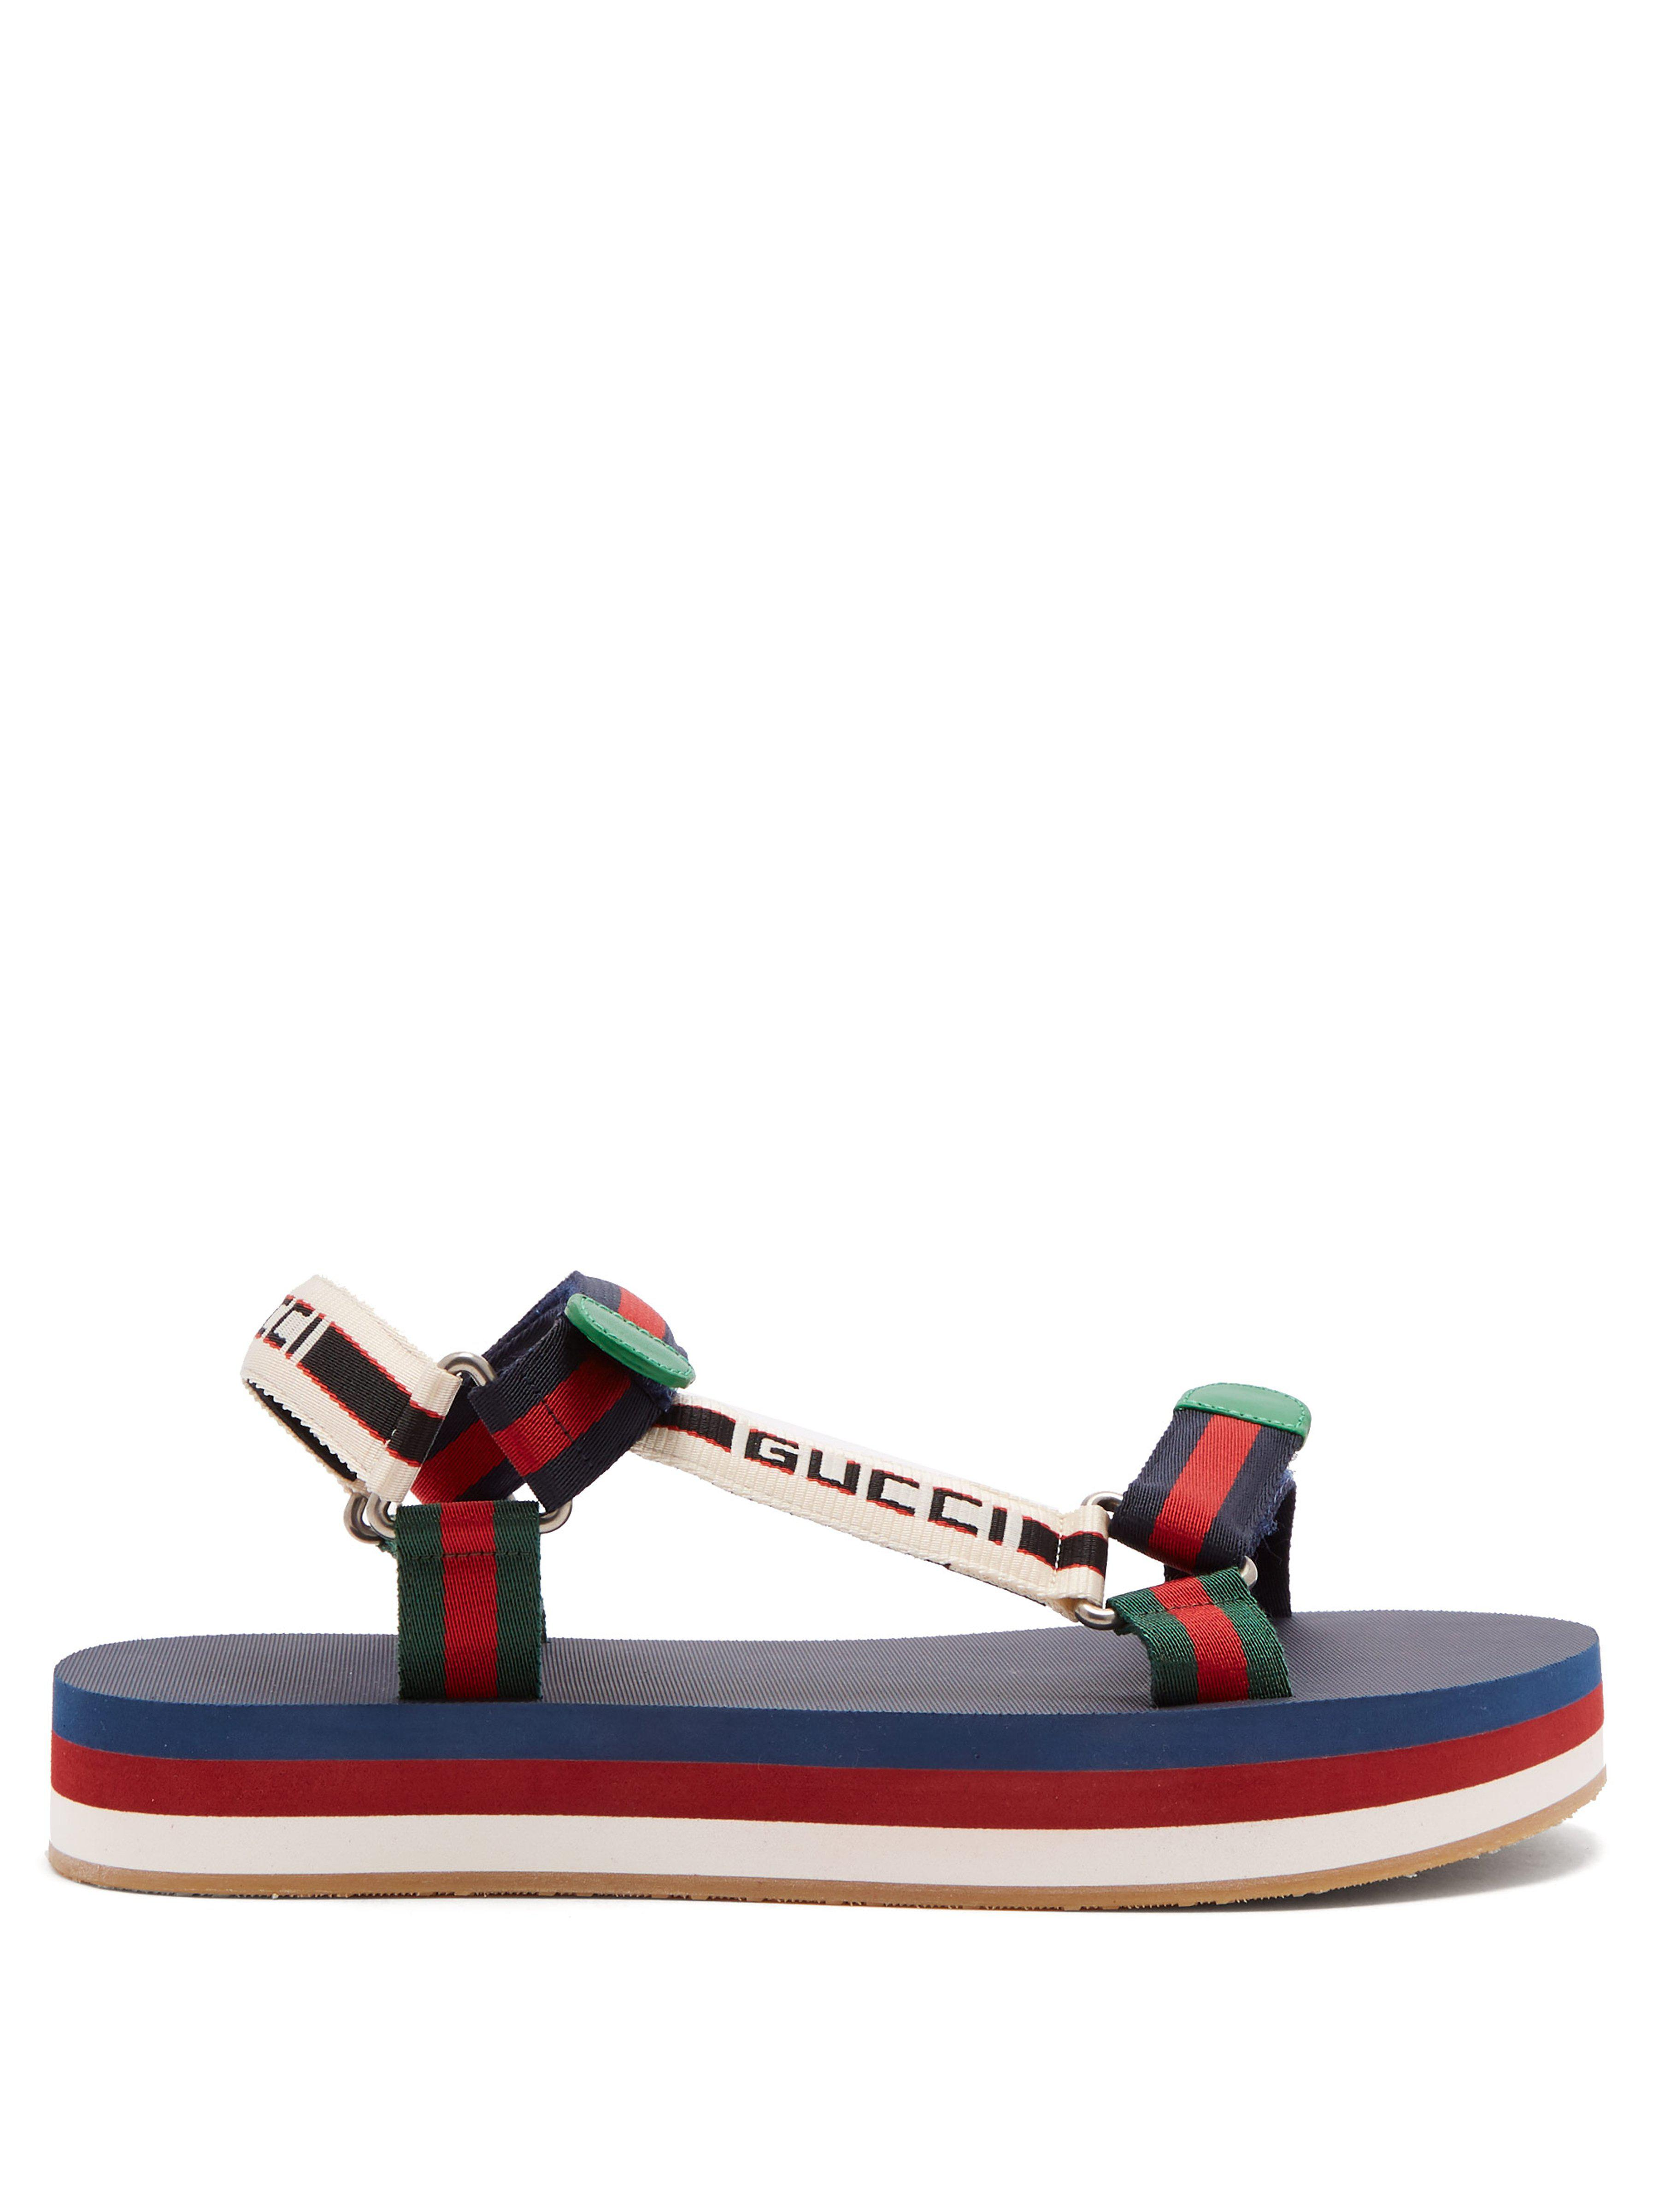 59c84d22643 Gucci Bedlam Logo Strap Sandals for Men - Lyst